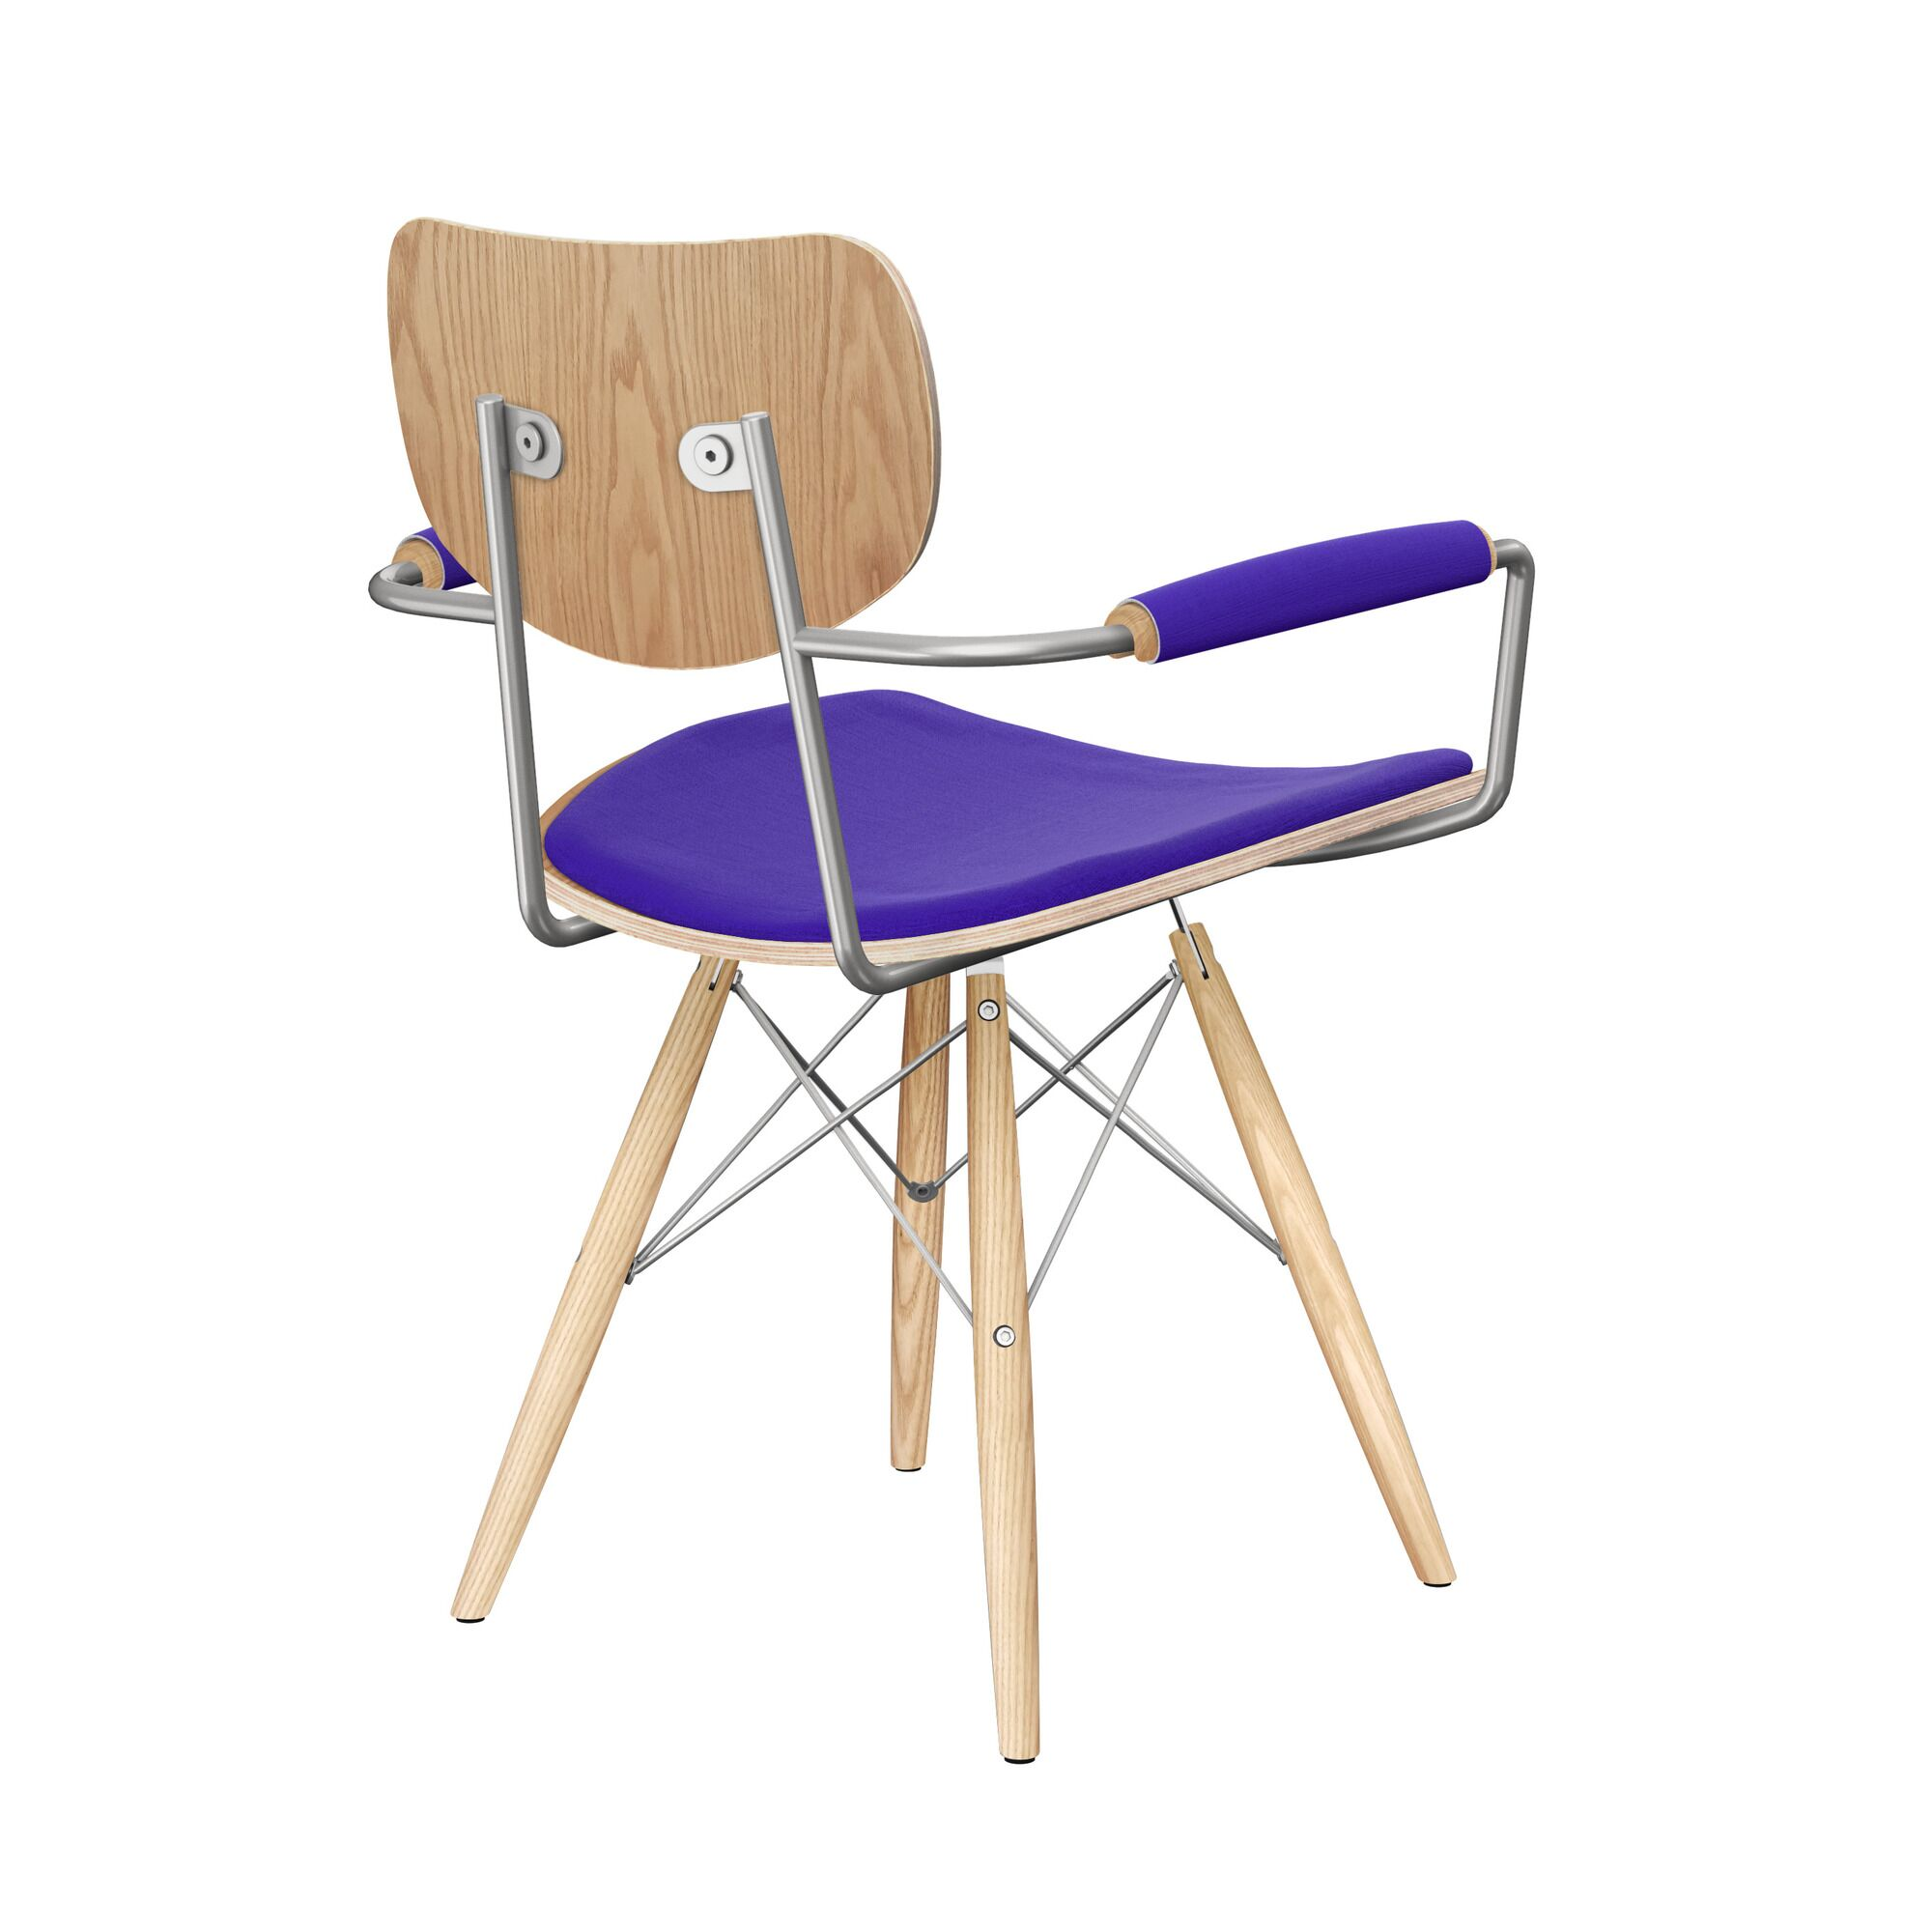 Bastow Upholstered Dining Chair Upholstery Color: Vibrant Purple, Leg Color: Natural, Frame Color: Natural